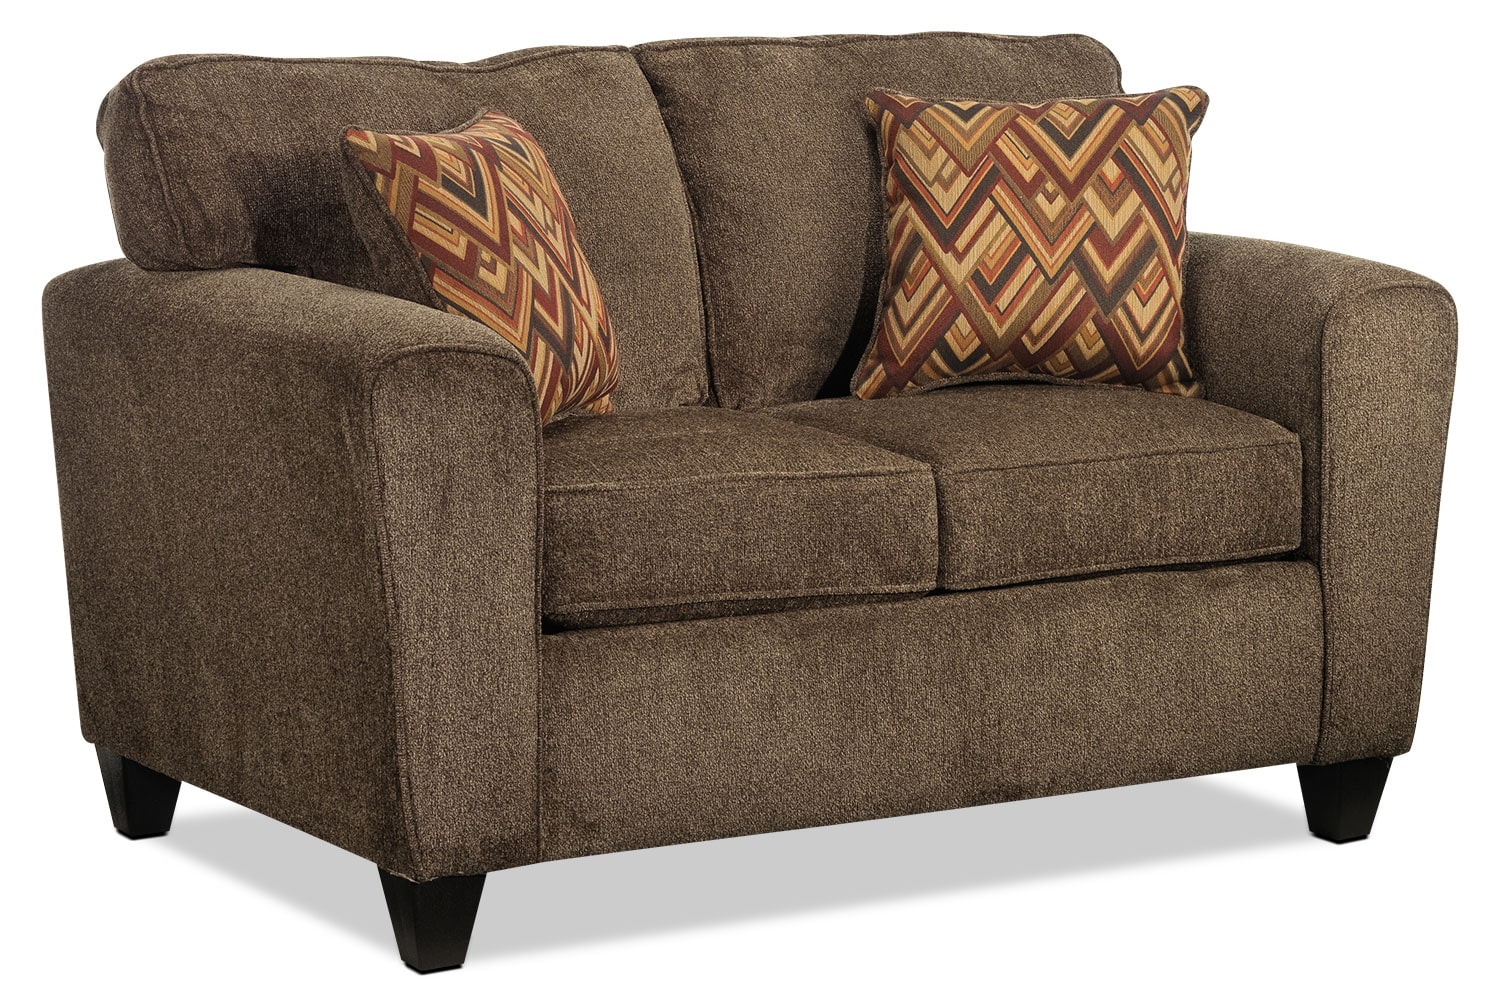 Living Room Furniture - Cornell Loveseat - Brown